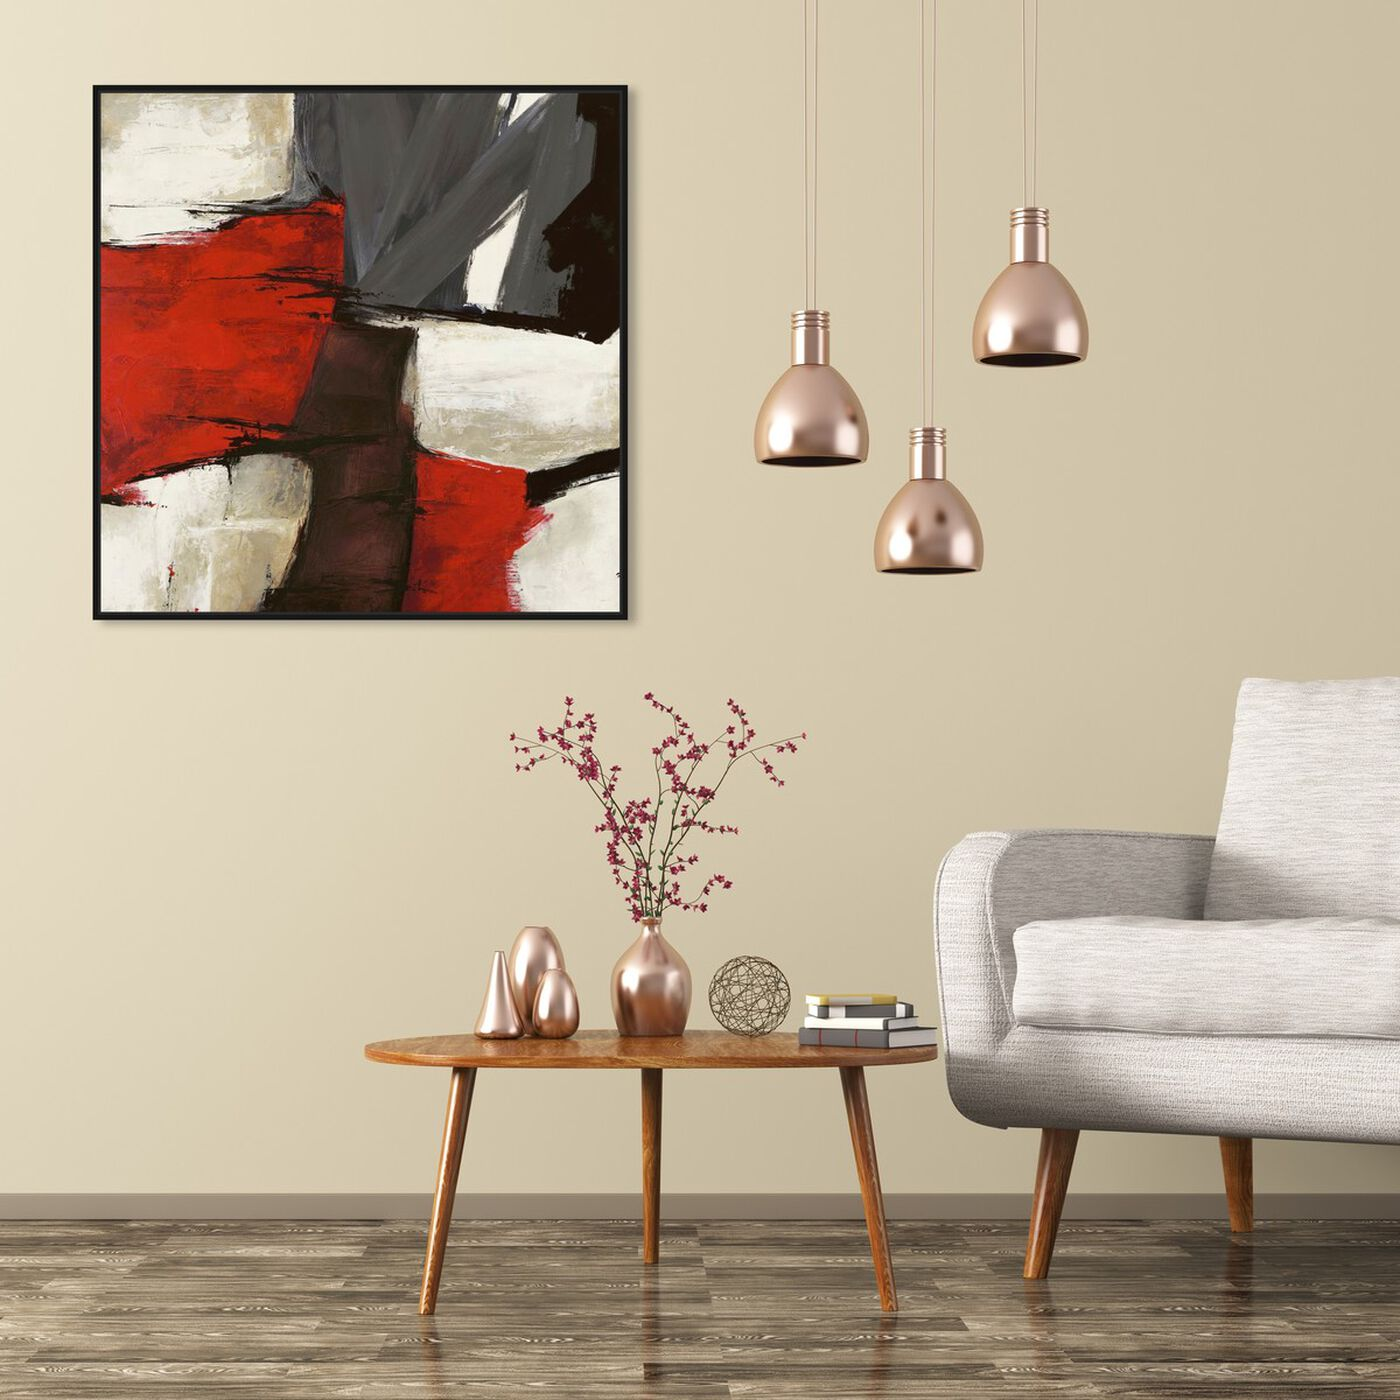 Hanging view of Sai - Rubrum featuring abstract and paint art.